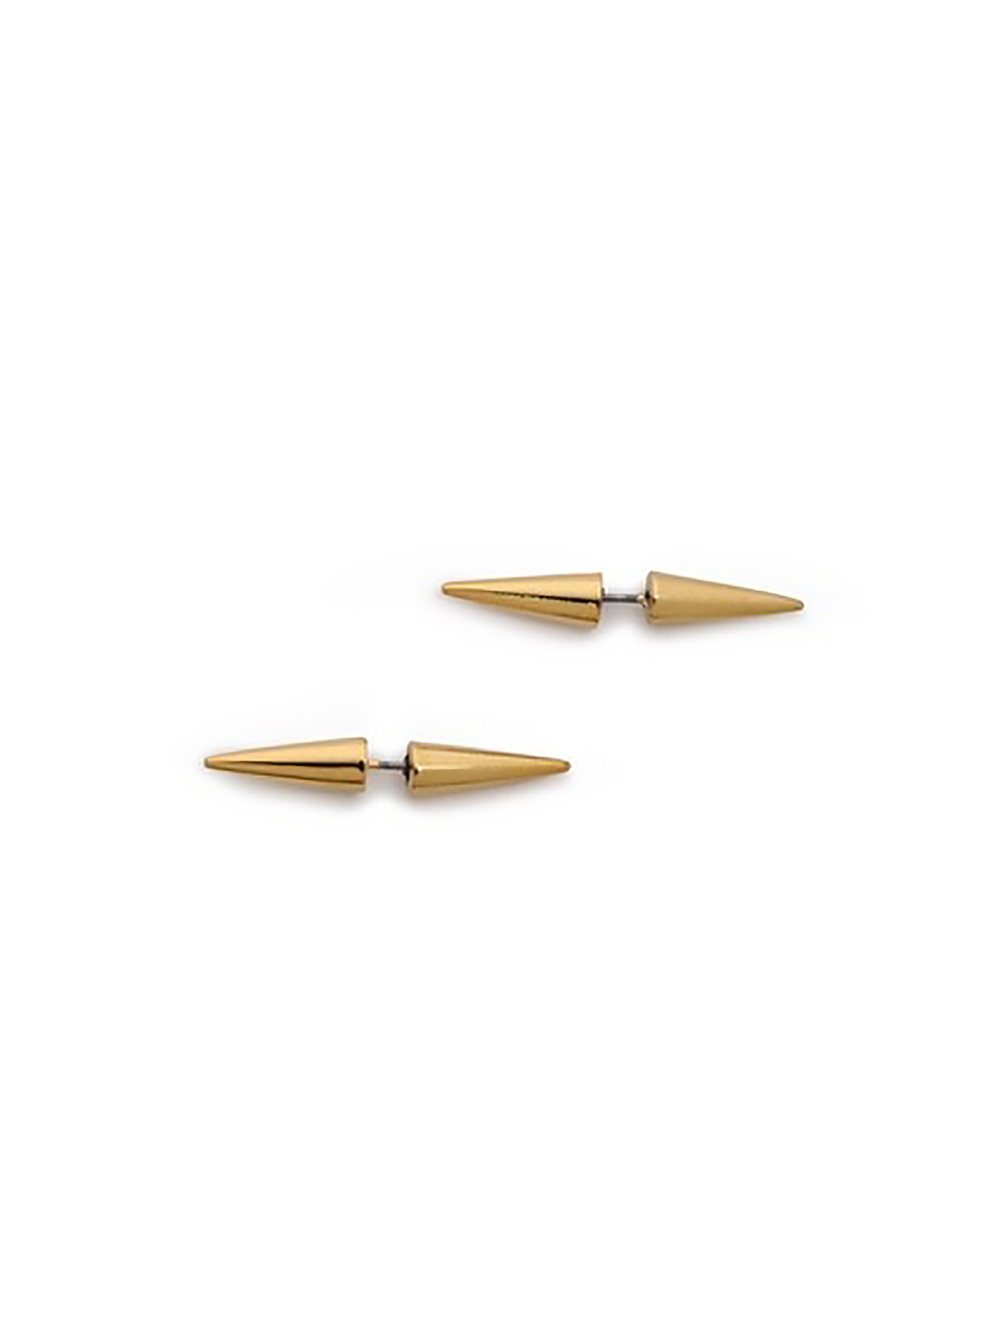 shopbop jules smith slim spike earrings studs 1500.jpg